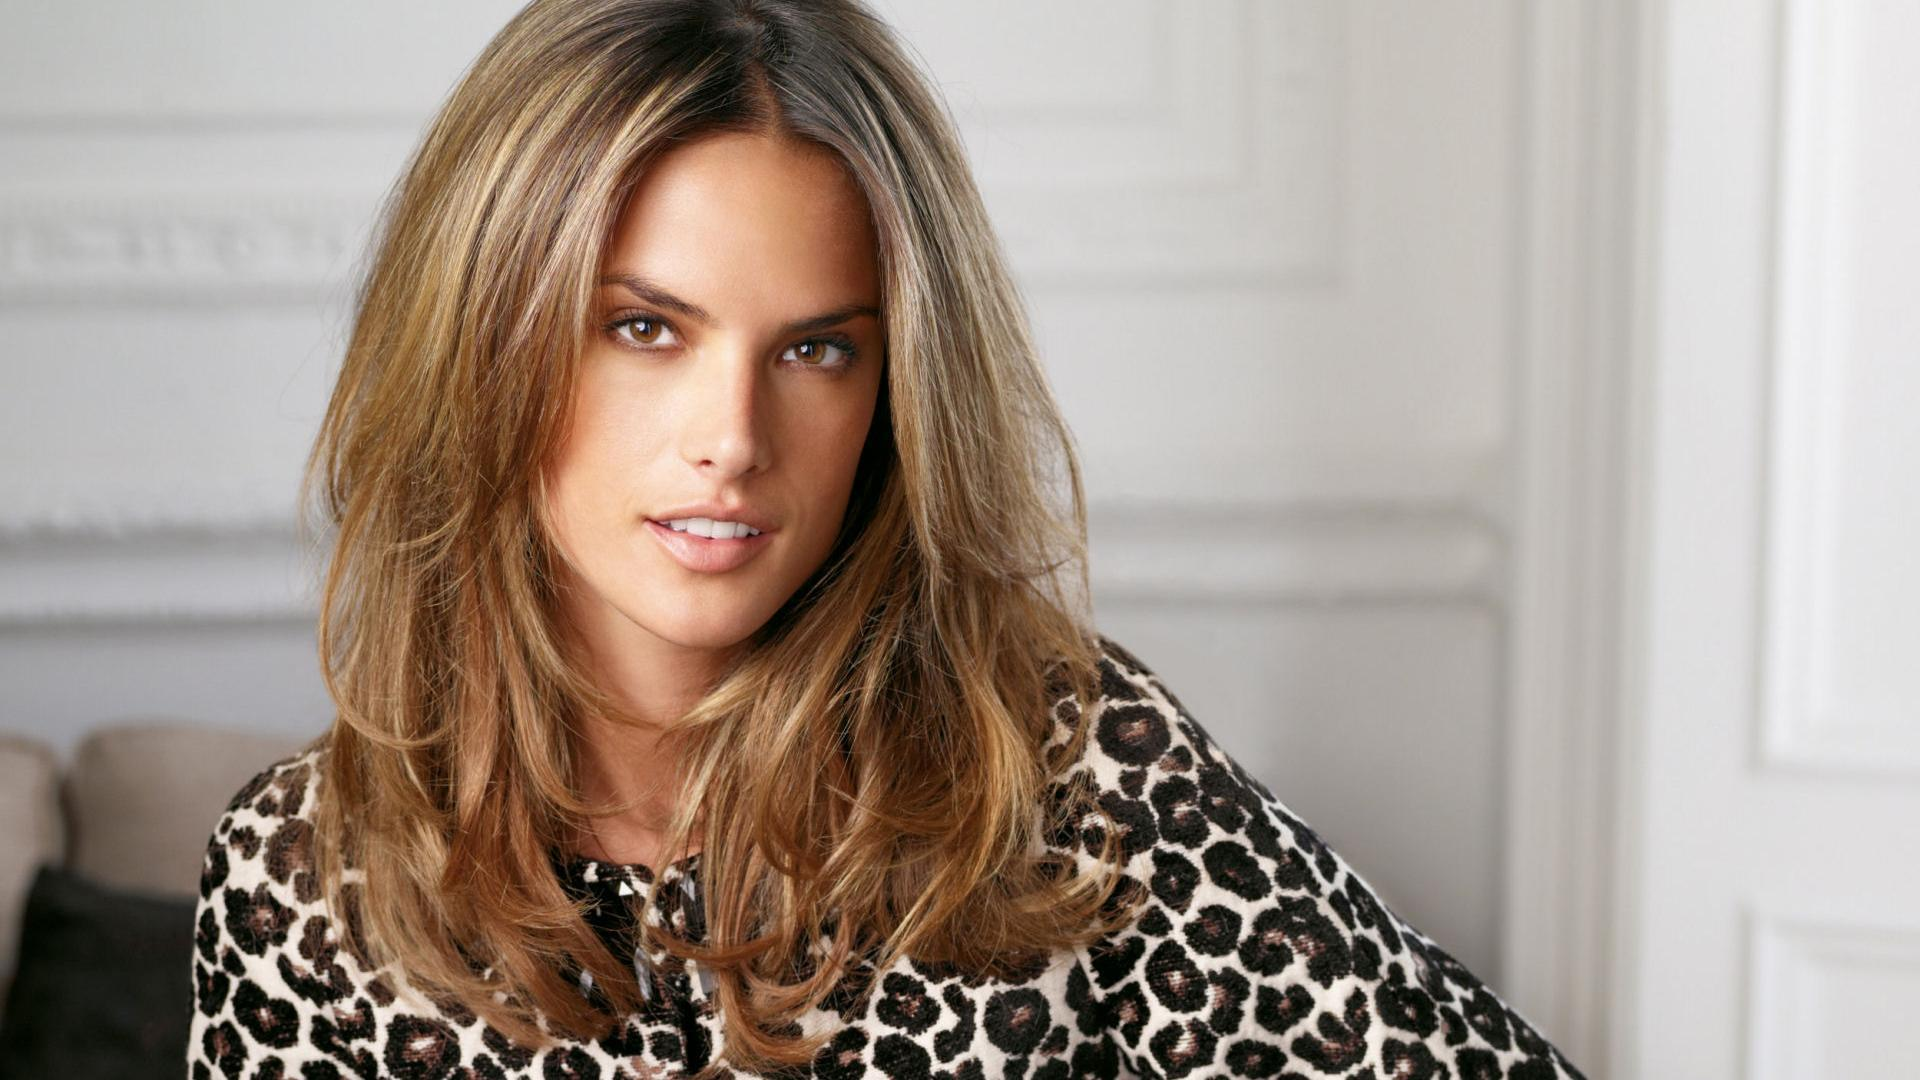 alessandra ambrosio wallpapers - photo #7